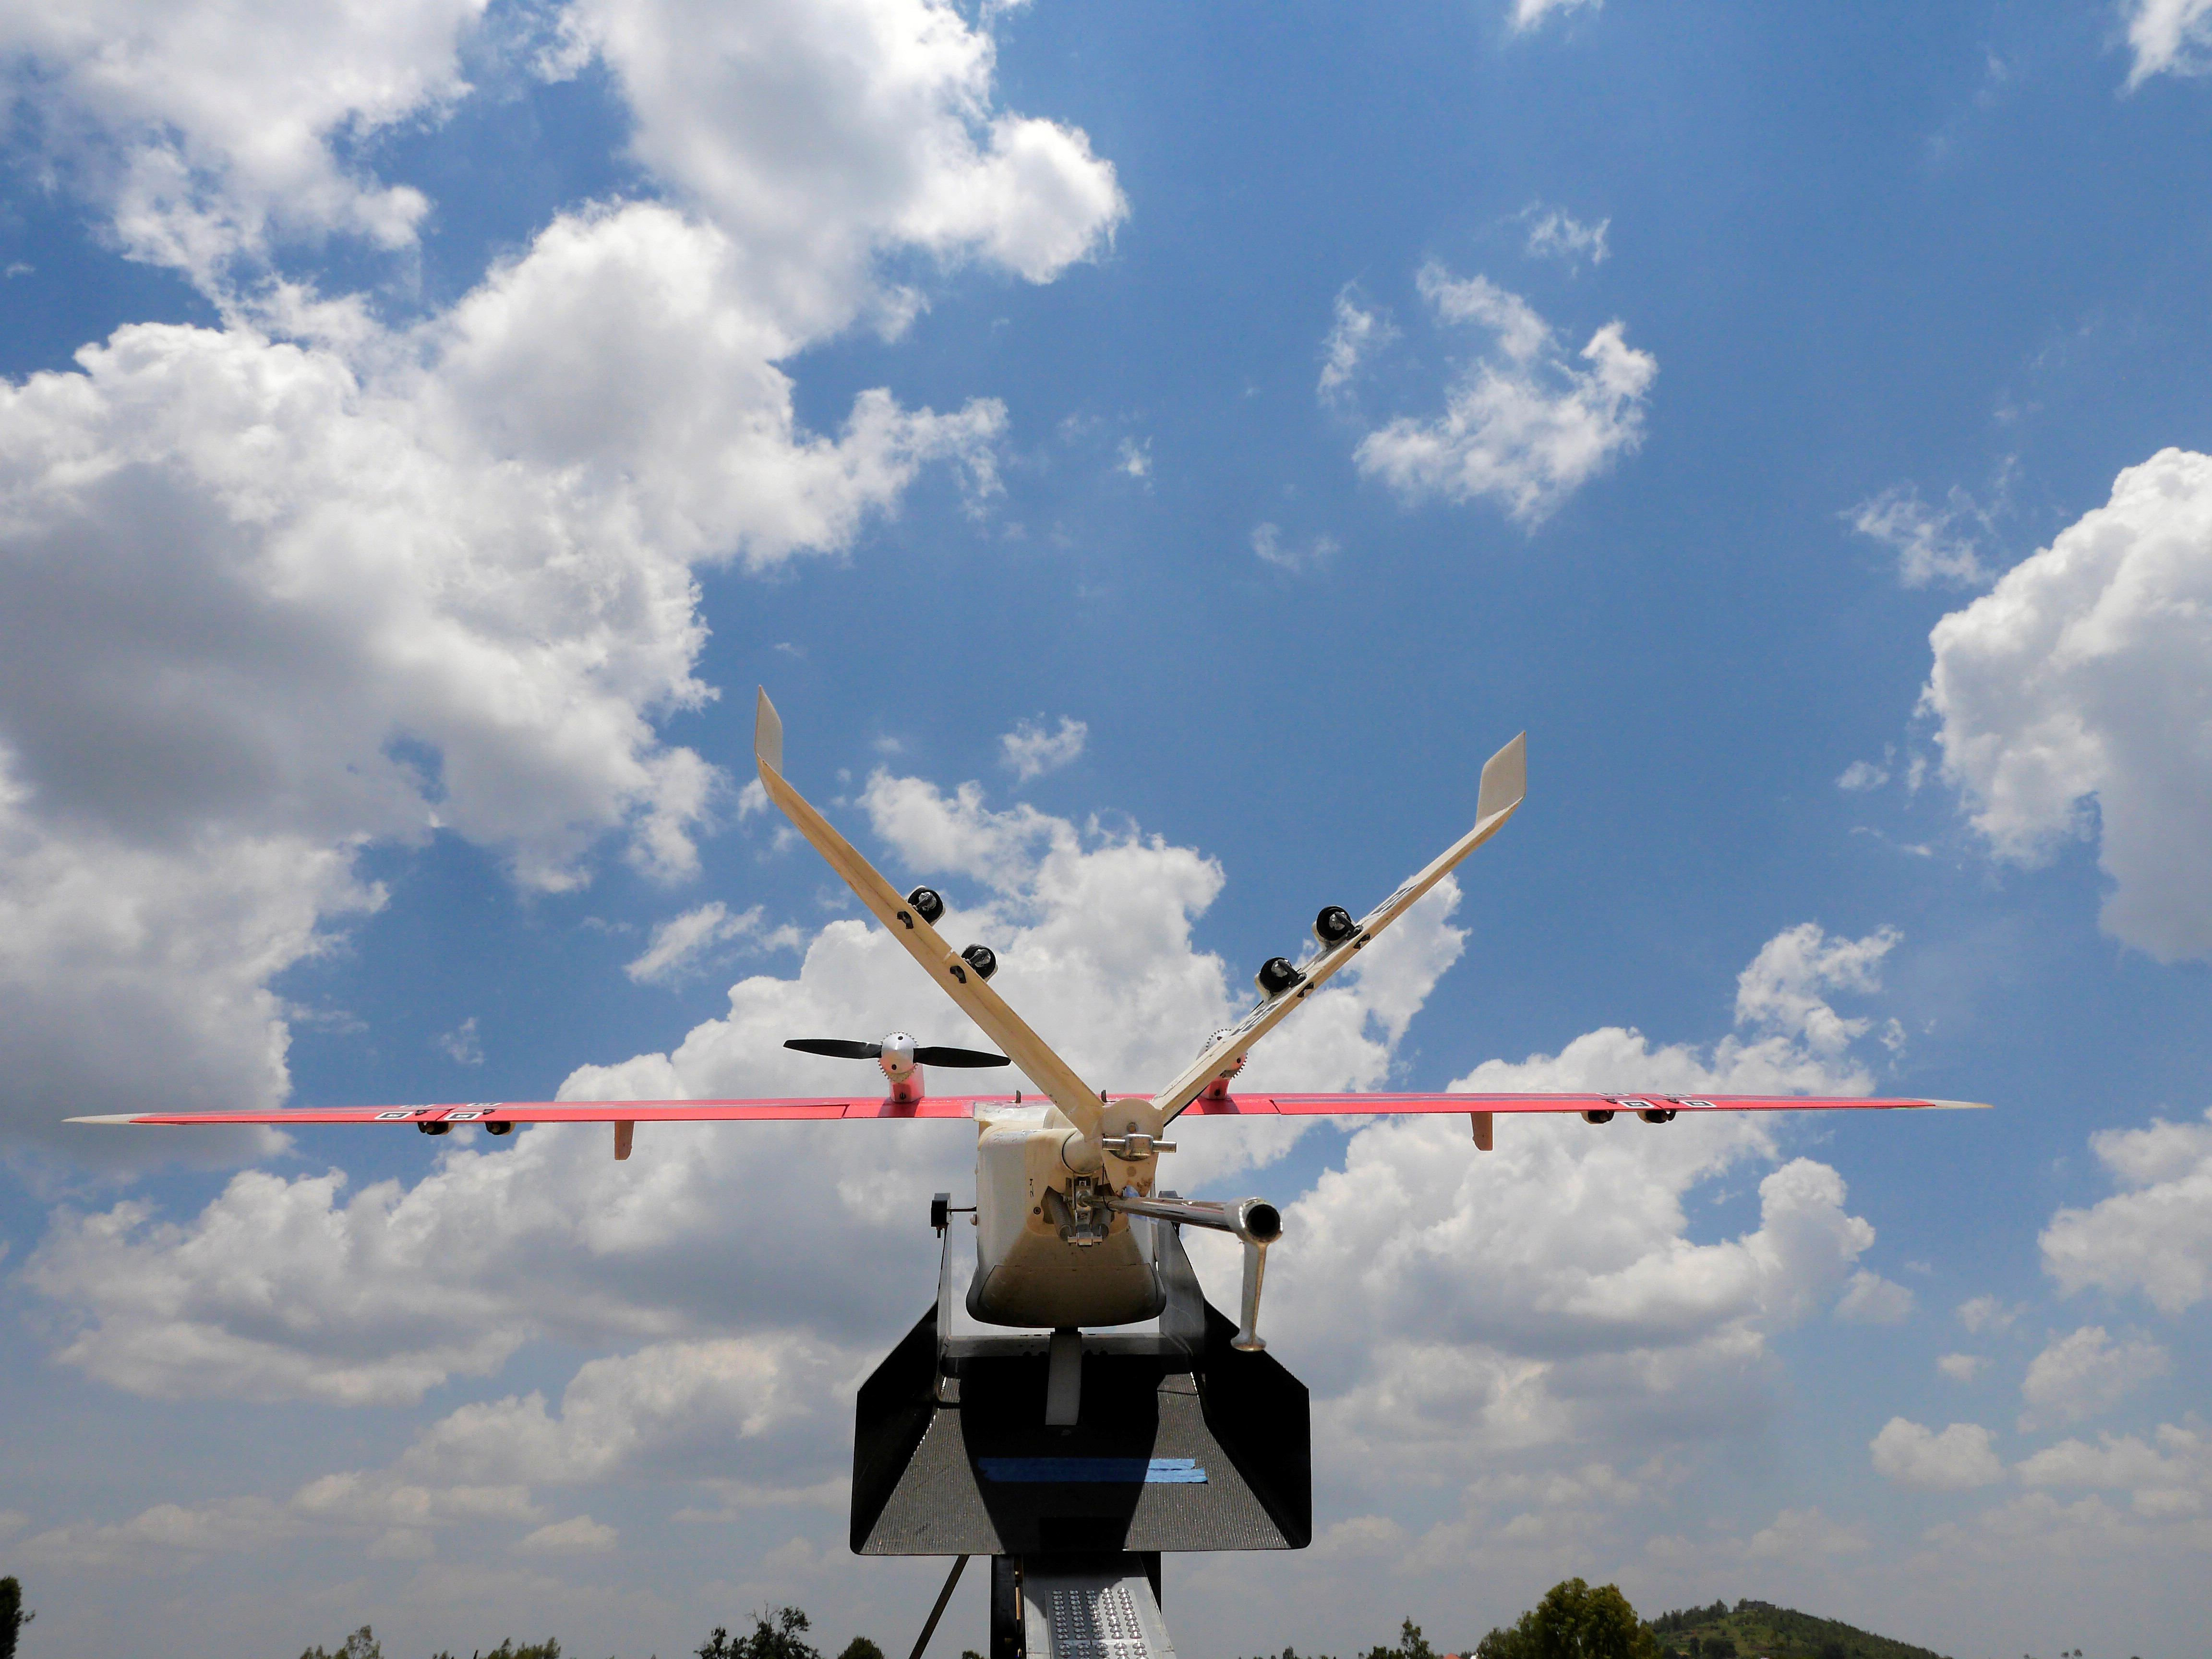 A drone is placed on a launch pad at operations center in Muhanda, south of Rwanda's capital Kigali where Zipline, a California-based robotics company delivered their first blood to patients using a drone October 12, 2016. Picture taken October 12, 2016. REUTERS/James Akena - D1BEUHXHQIAB